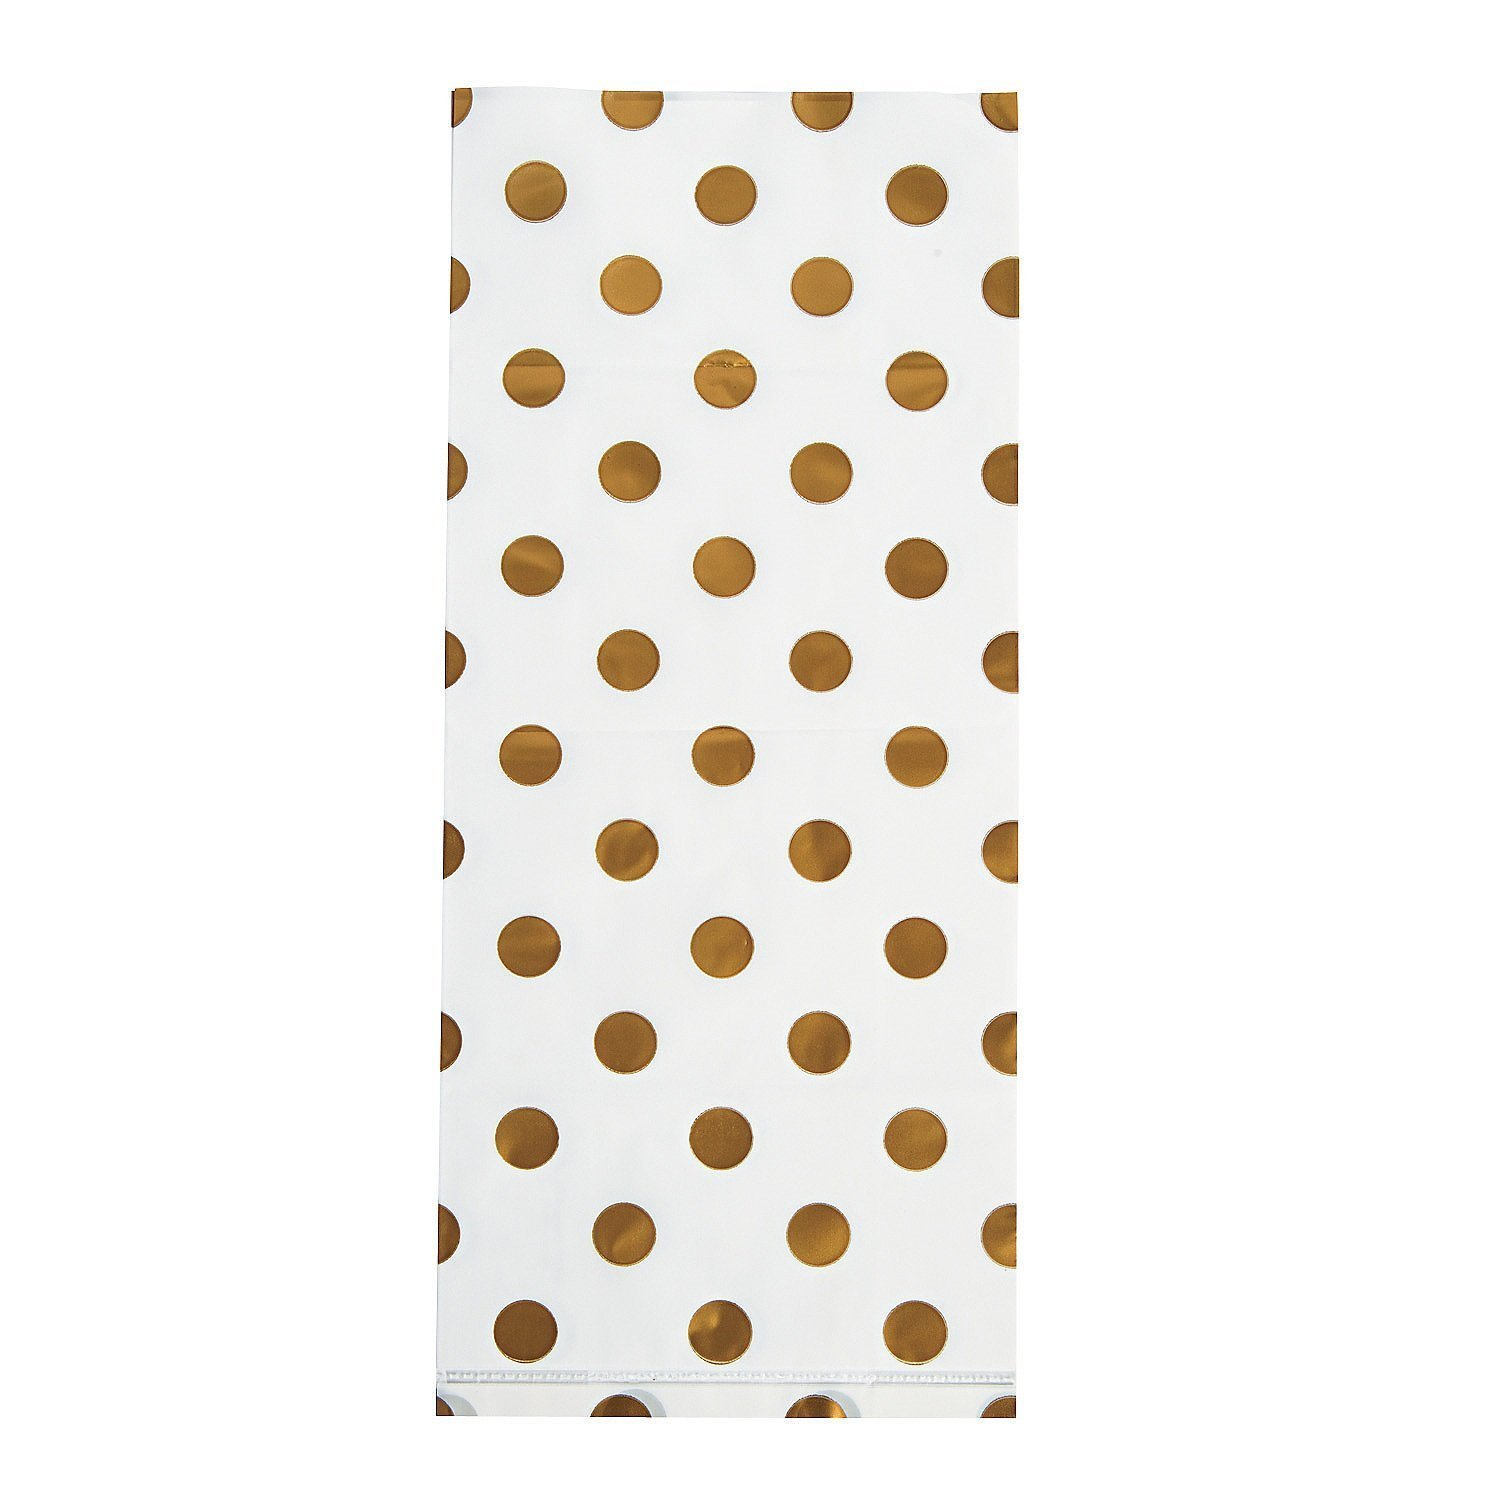 Gold Polka Dot Cellophane Bags, Pack of 60 Goodie Treat Bags for ...